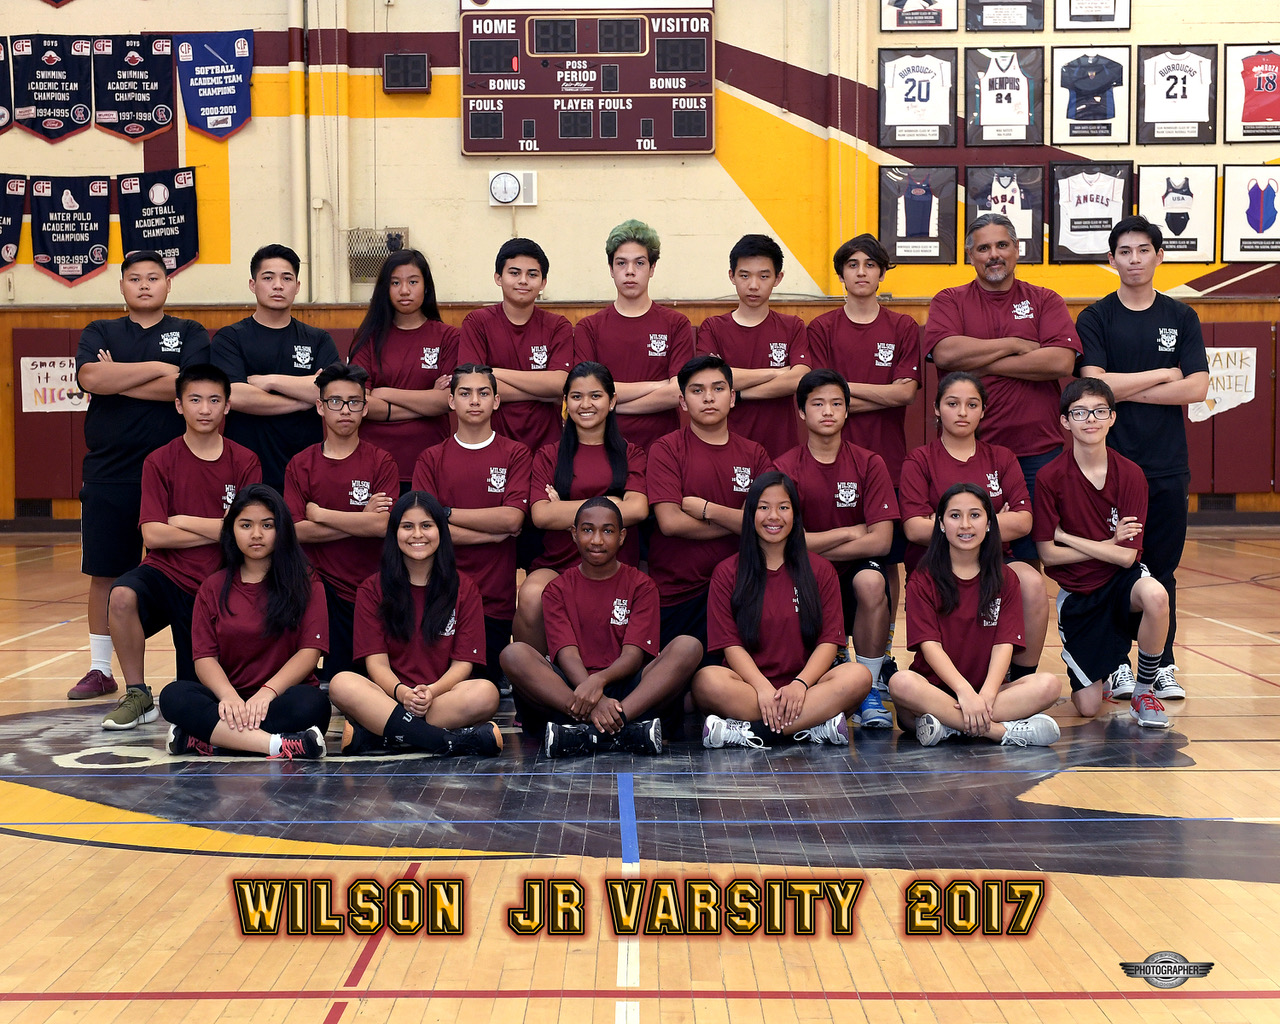 2017 Junior Varsity Badminton Team